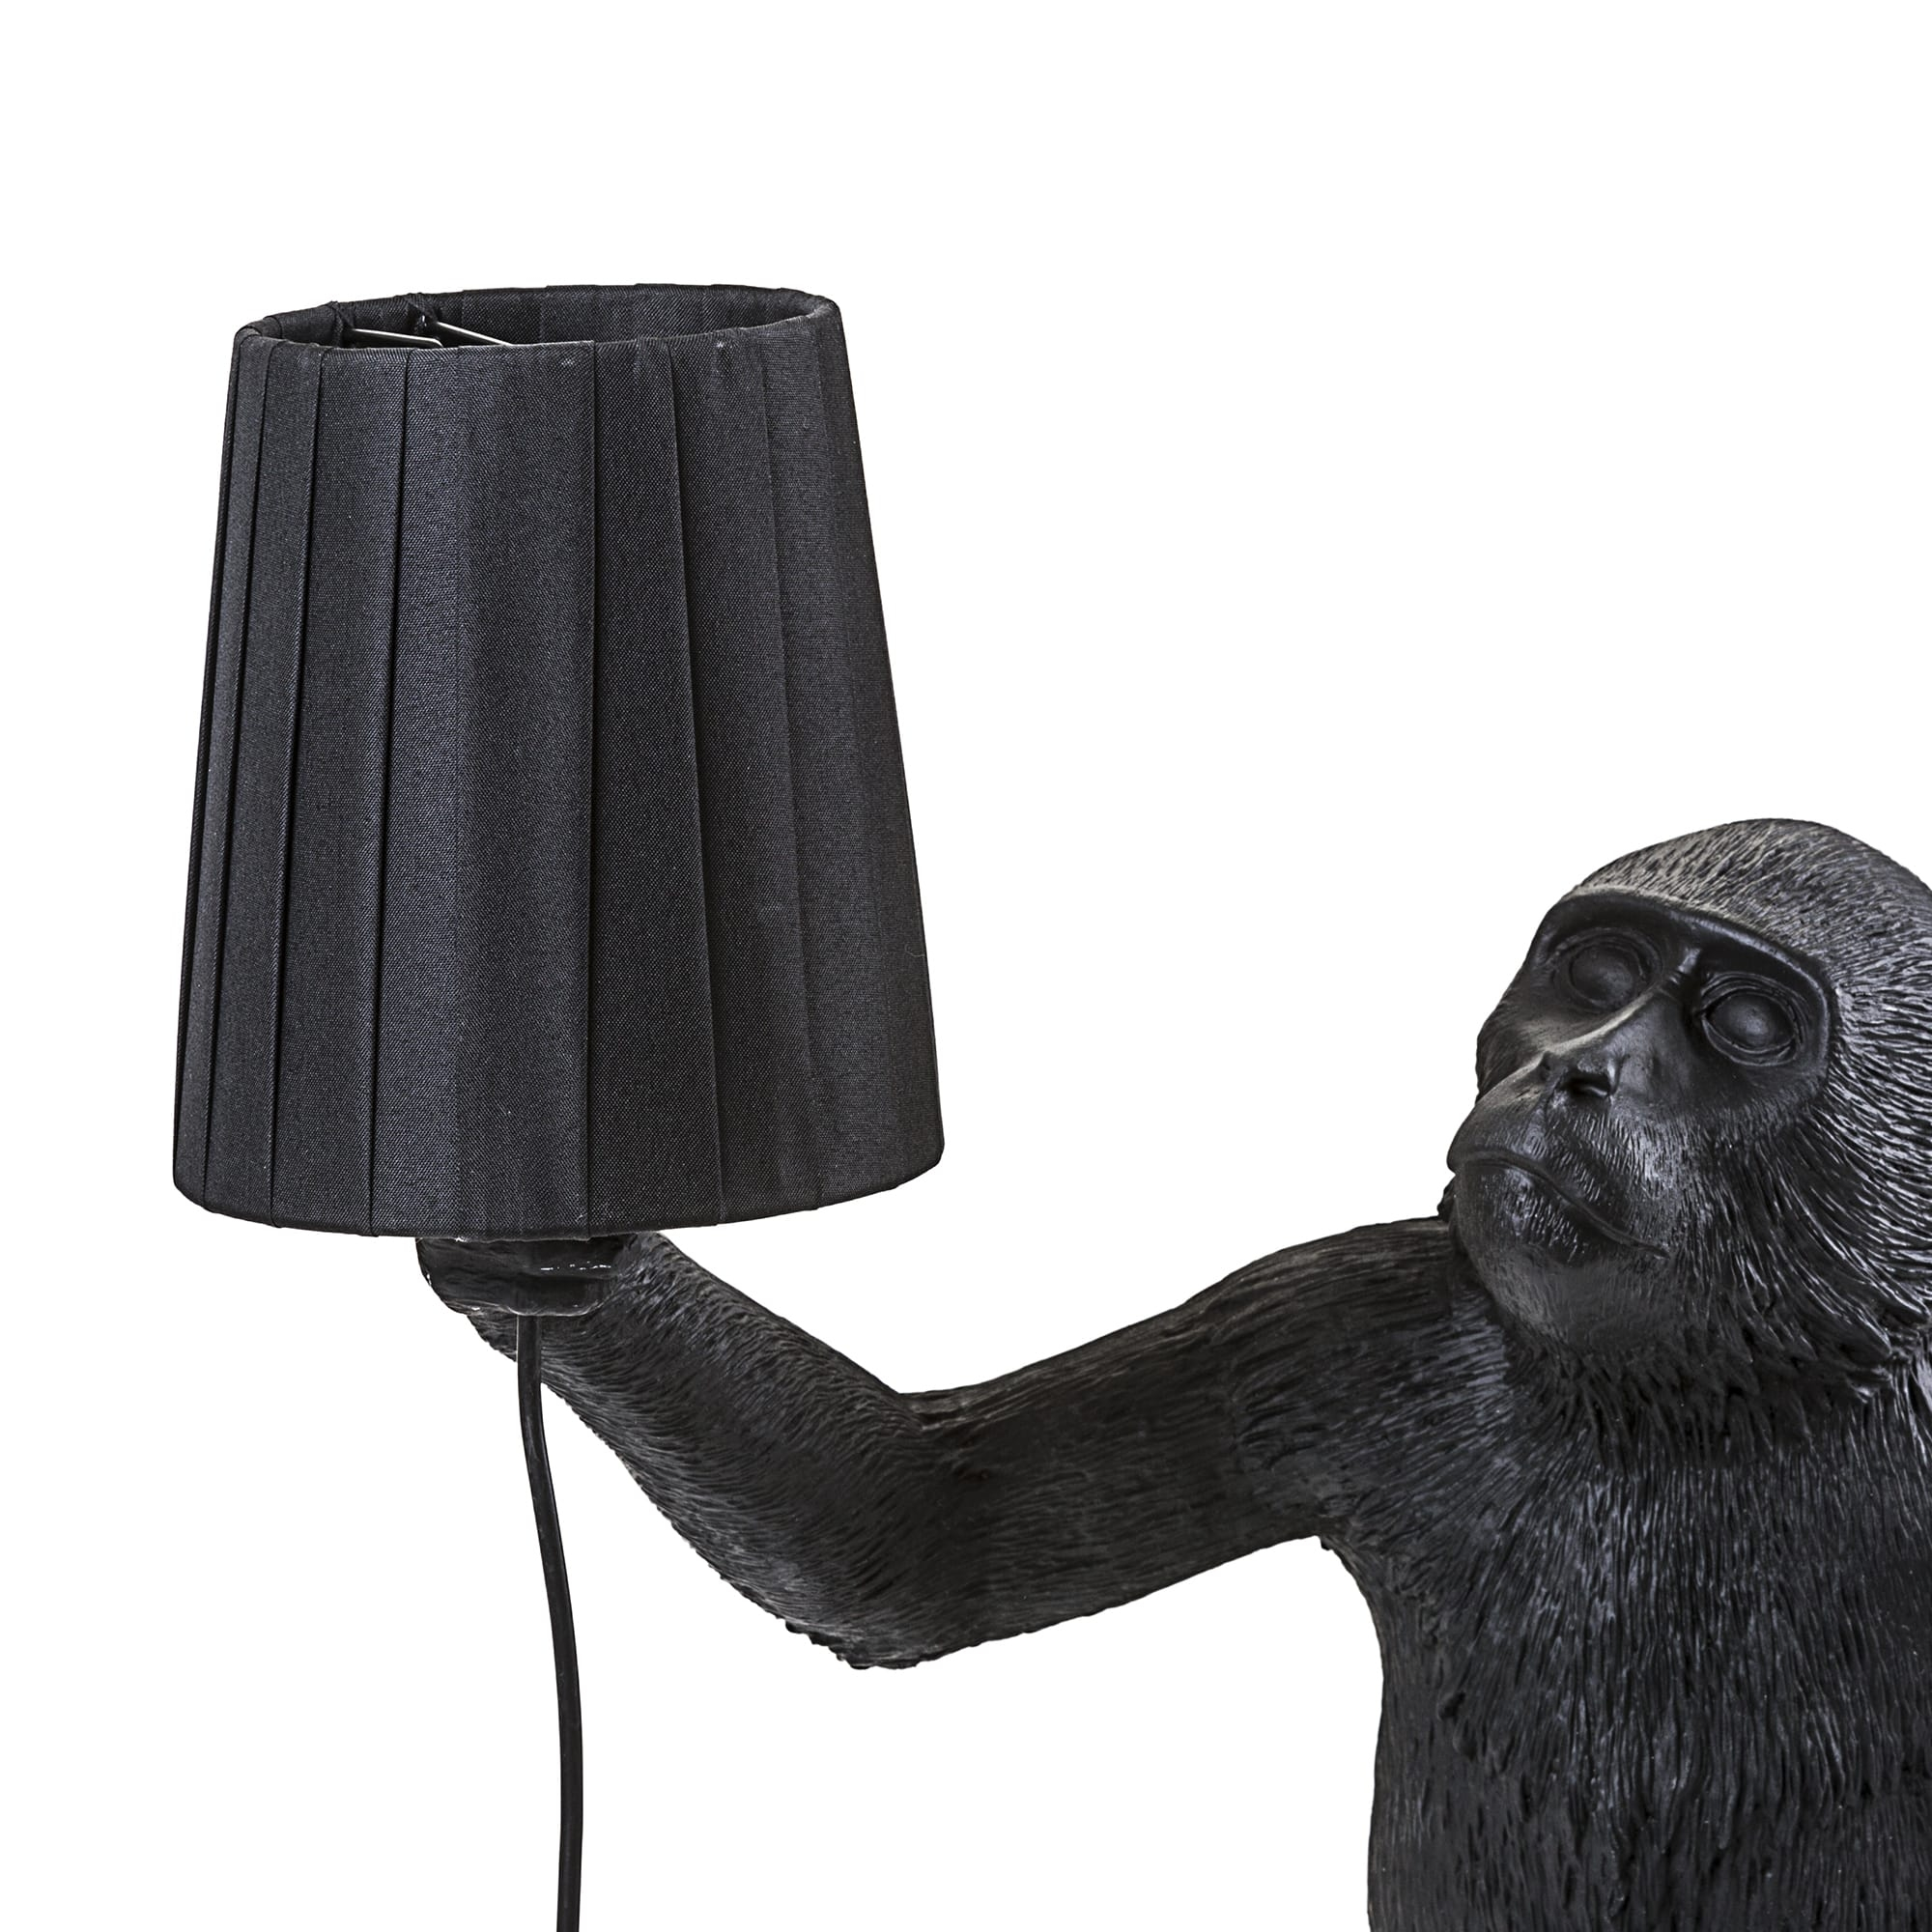 Click to view product details and reviews for Seletti Monkey Lamp Shade Black.